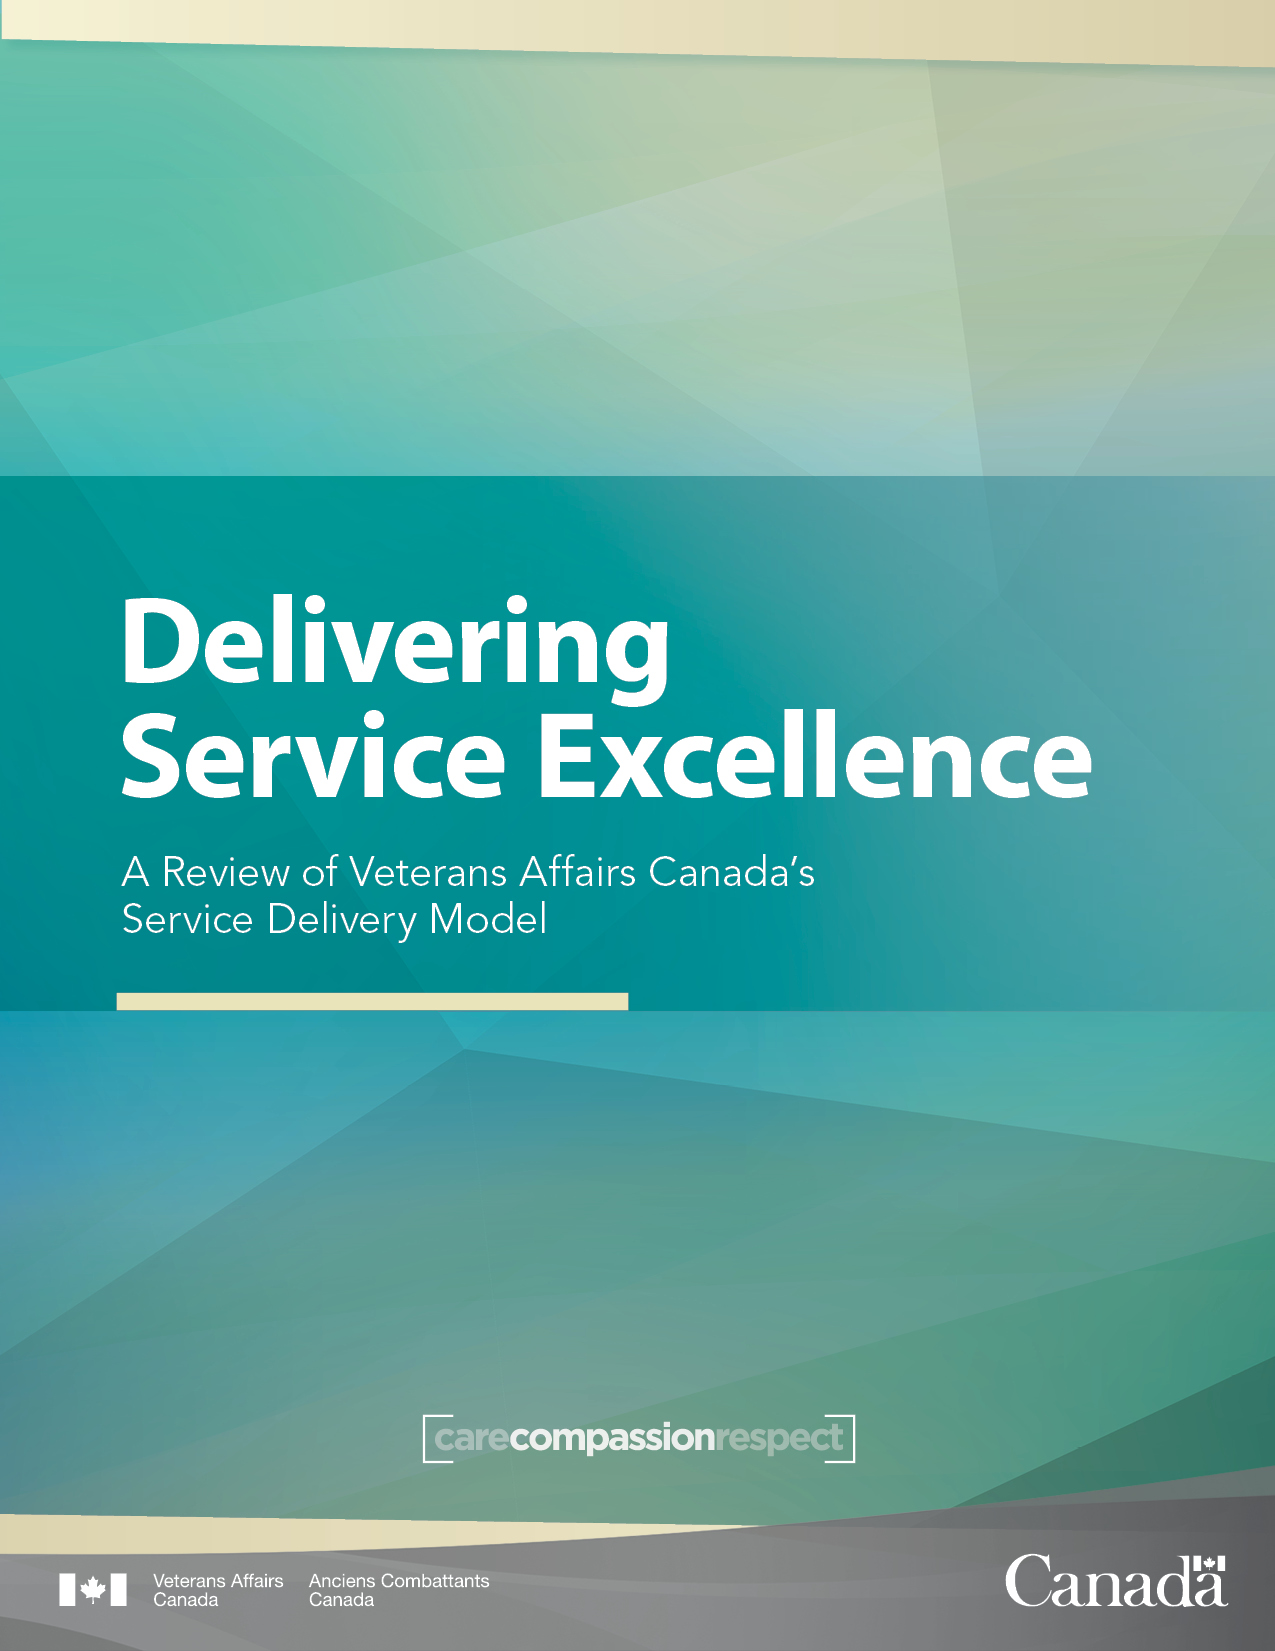 In pursuit of service excellence